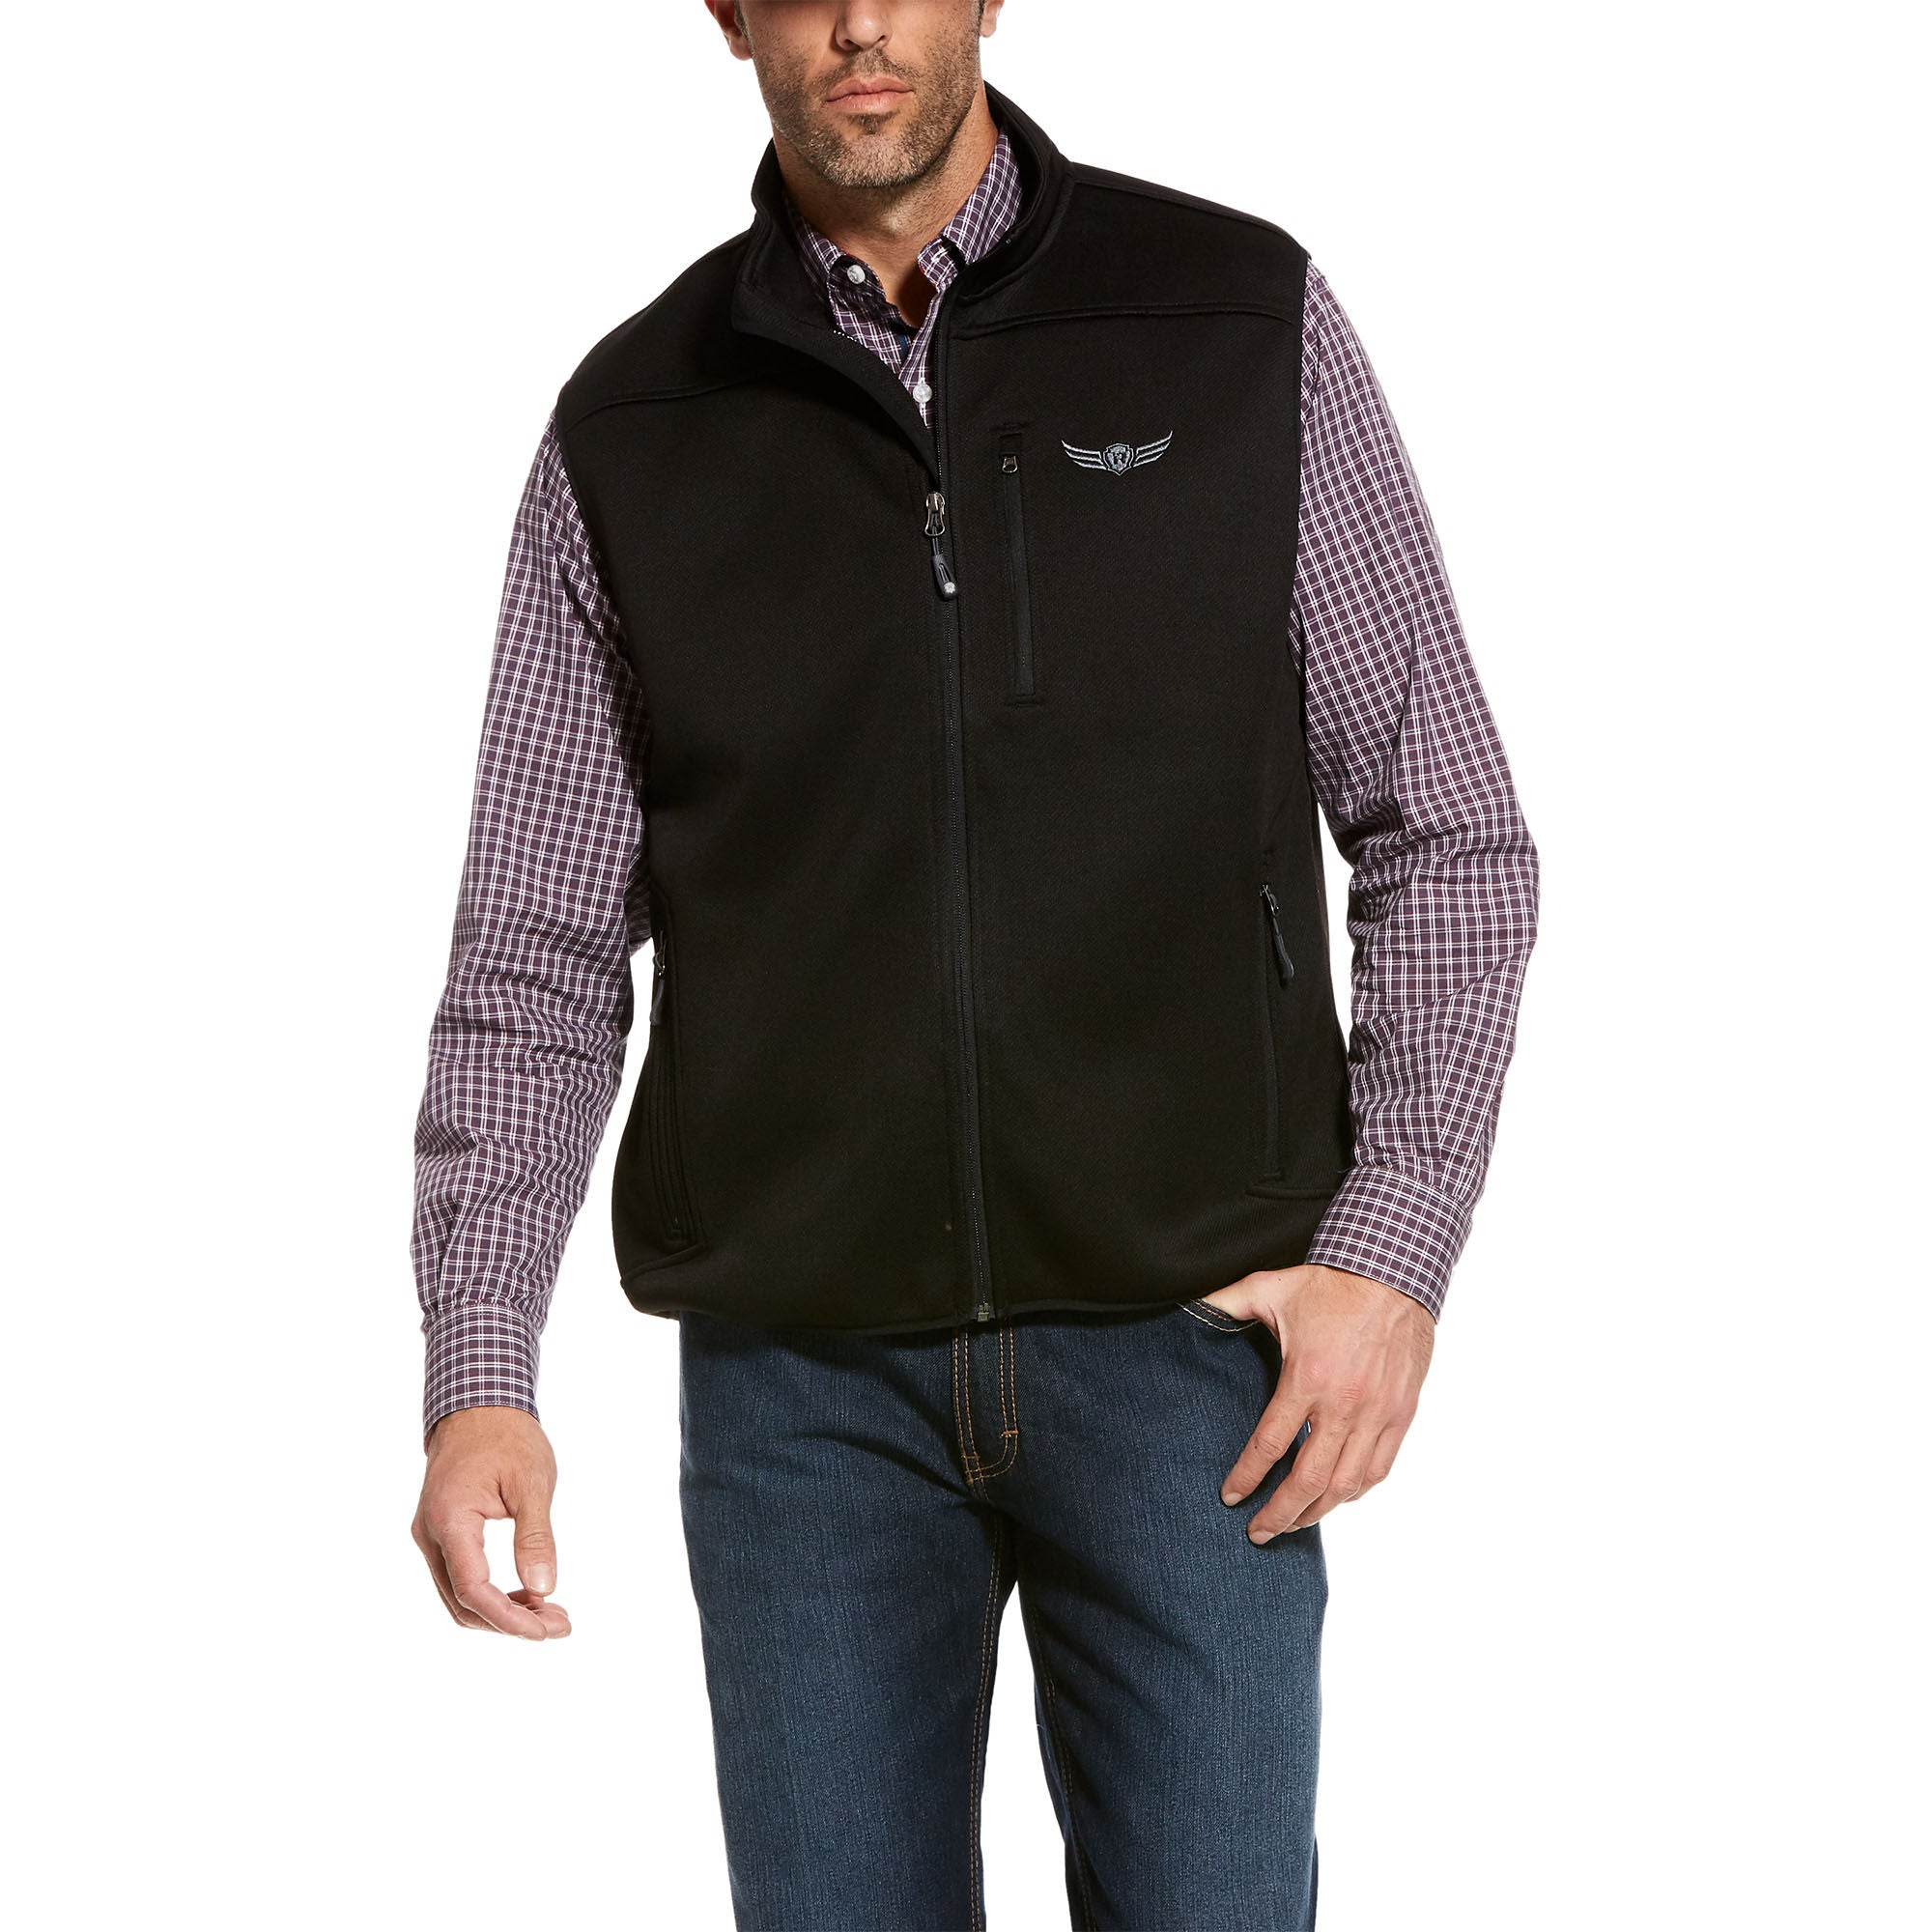 Ariat Relentless Determination Vest